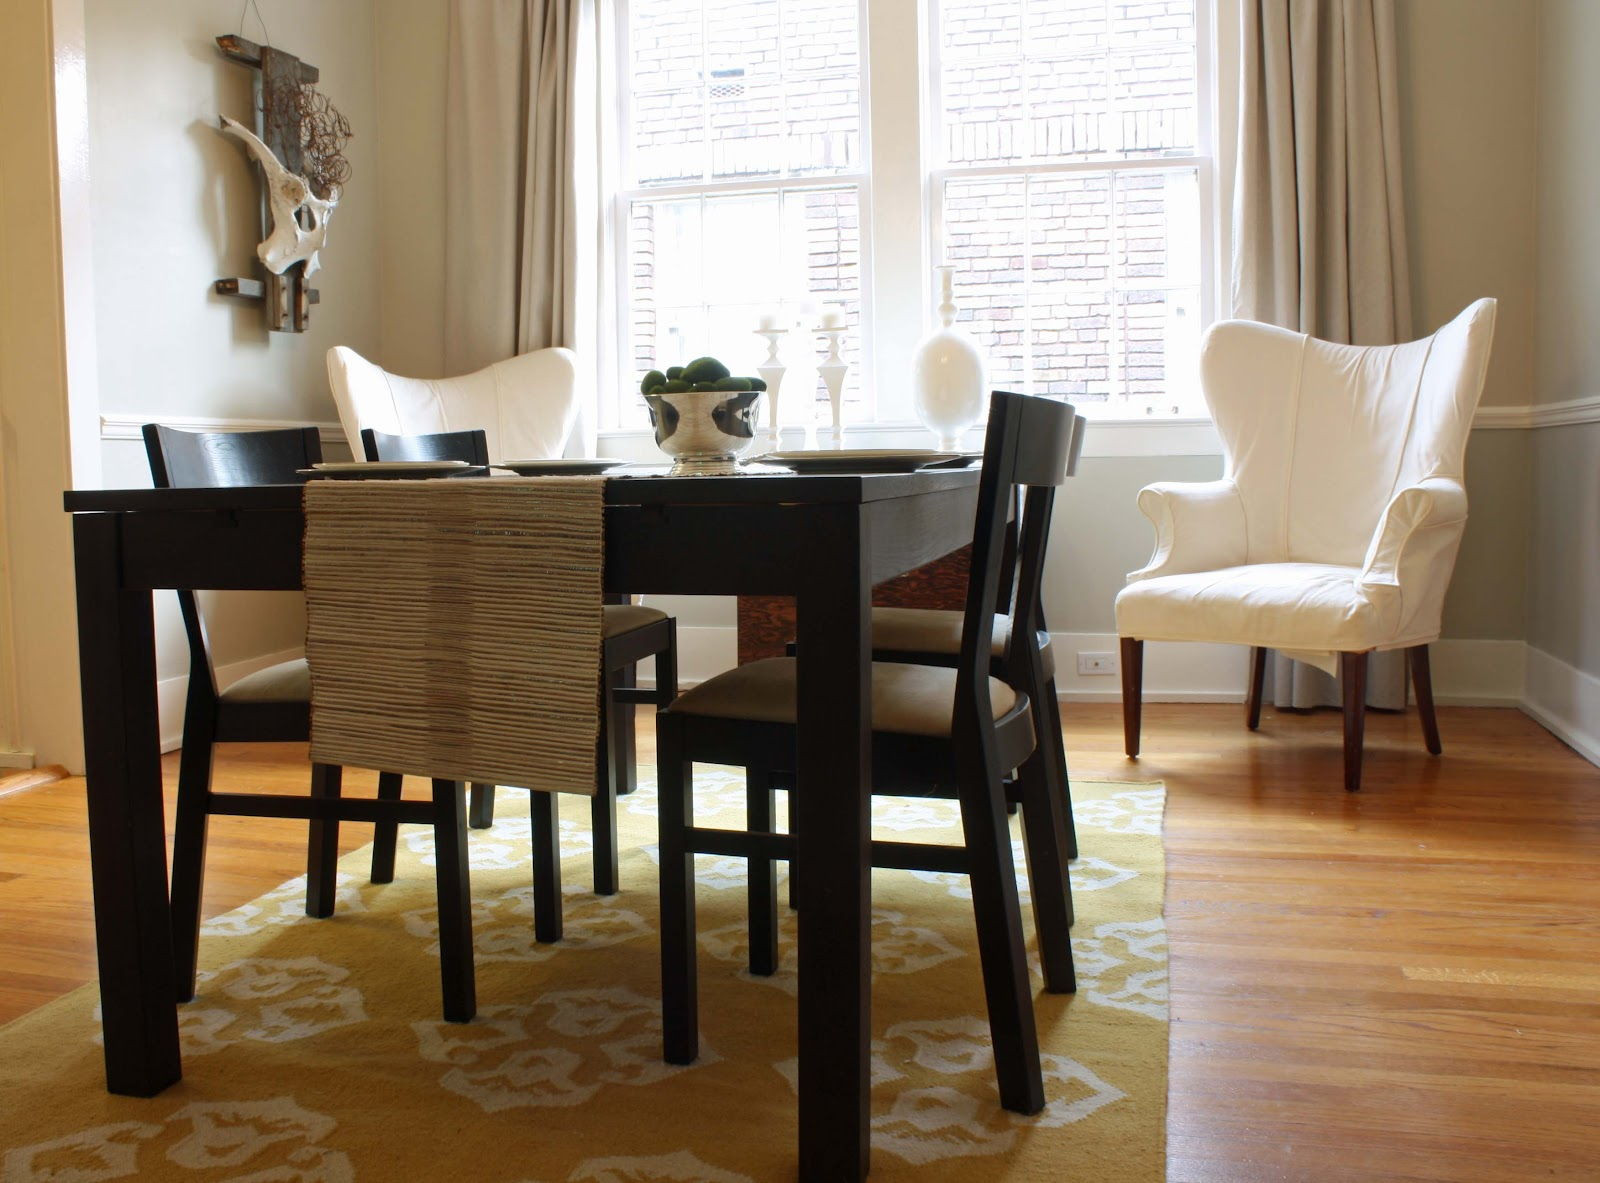 Best ideas about Ikea Dining Room Tables . Save or Pin Dining Room Tables to Match Your Home Now.